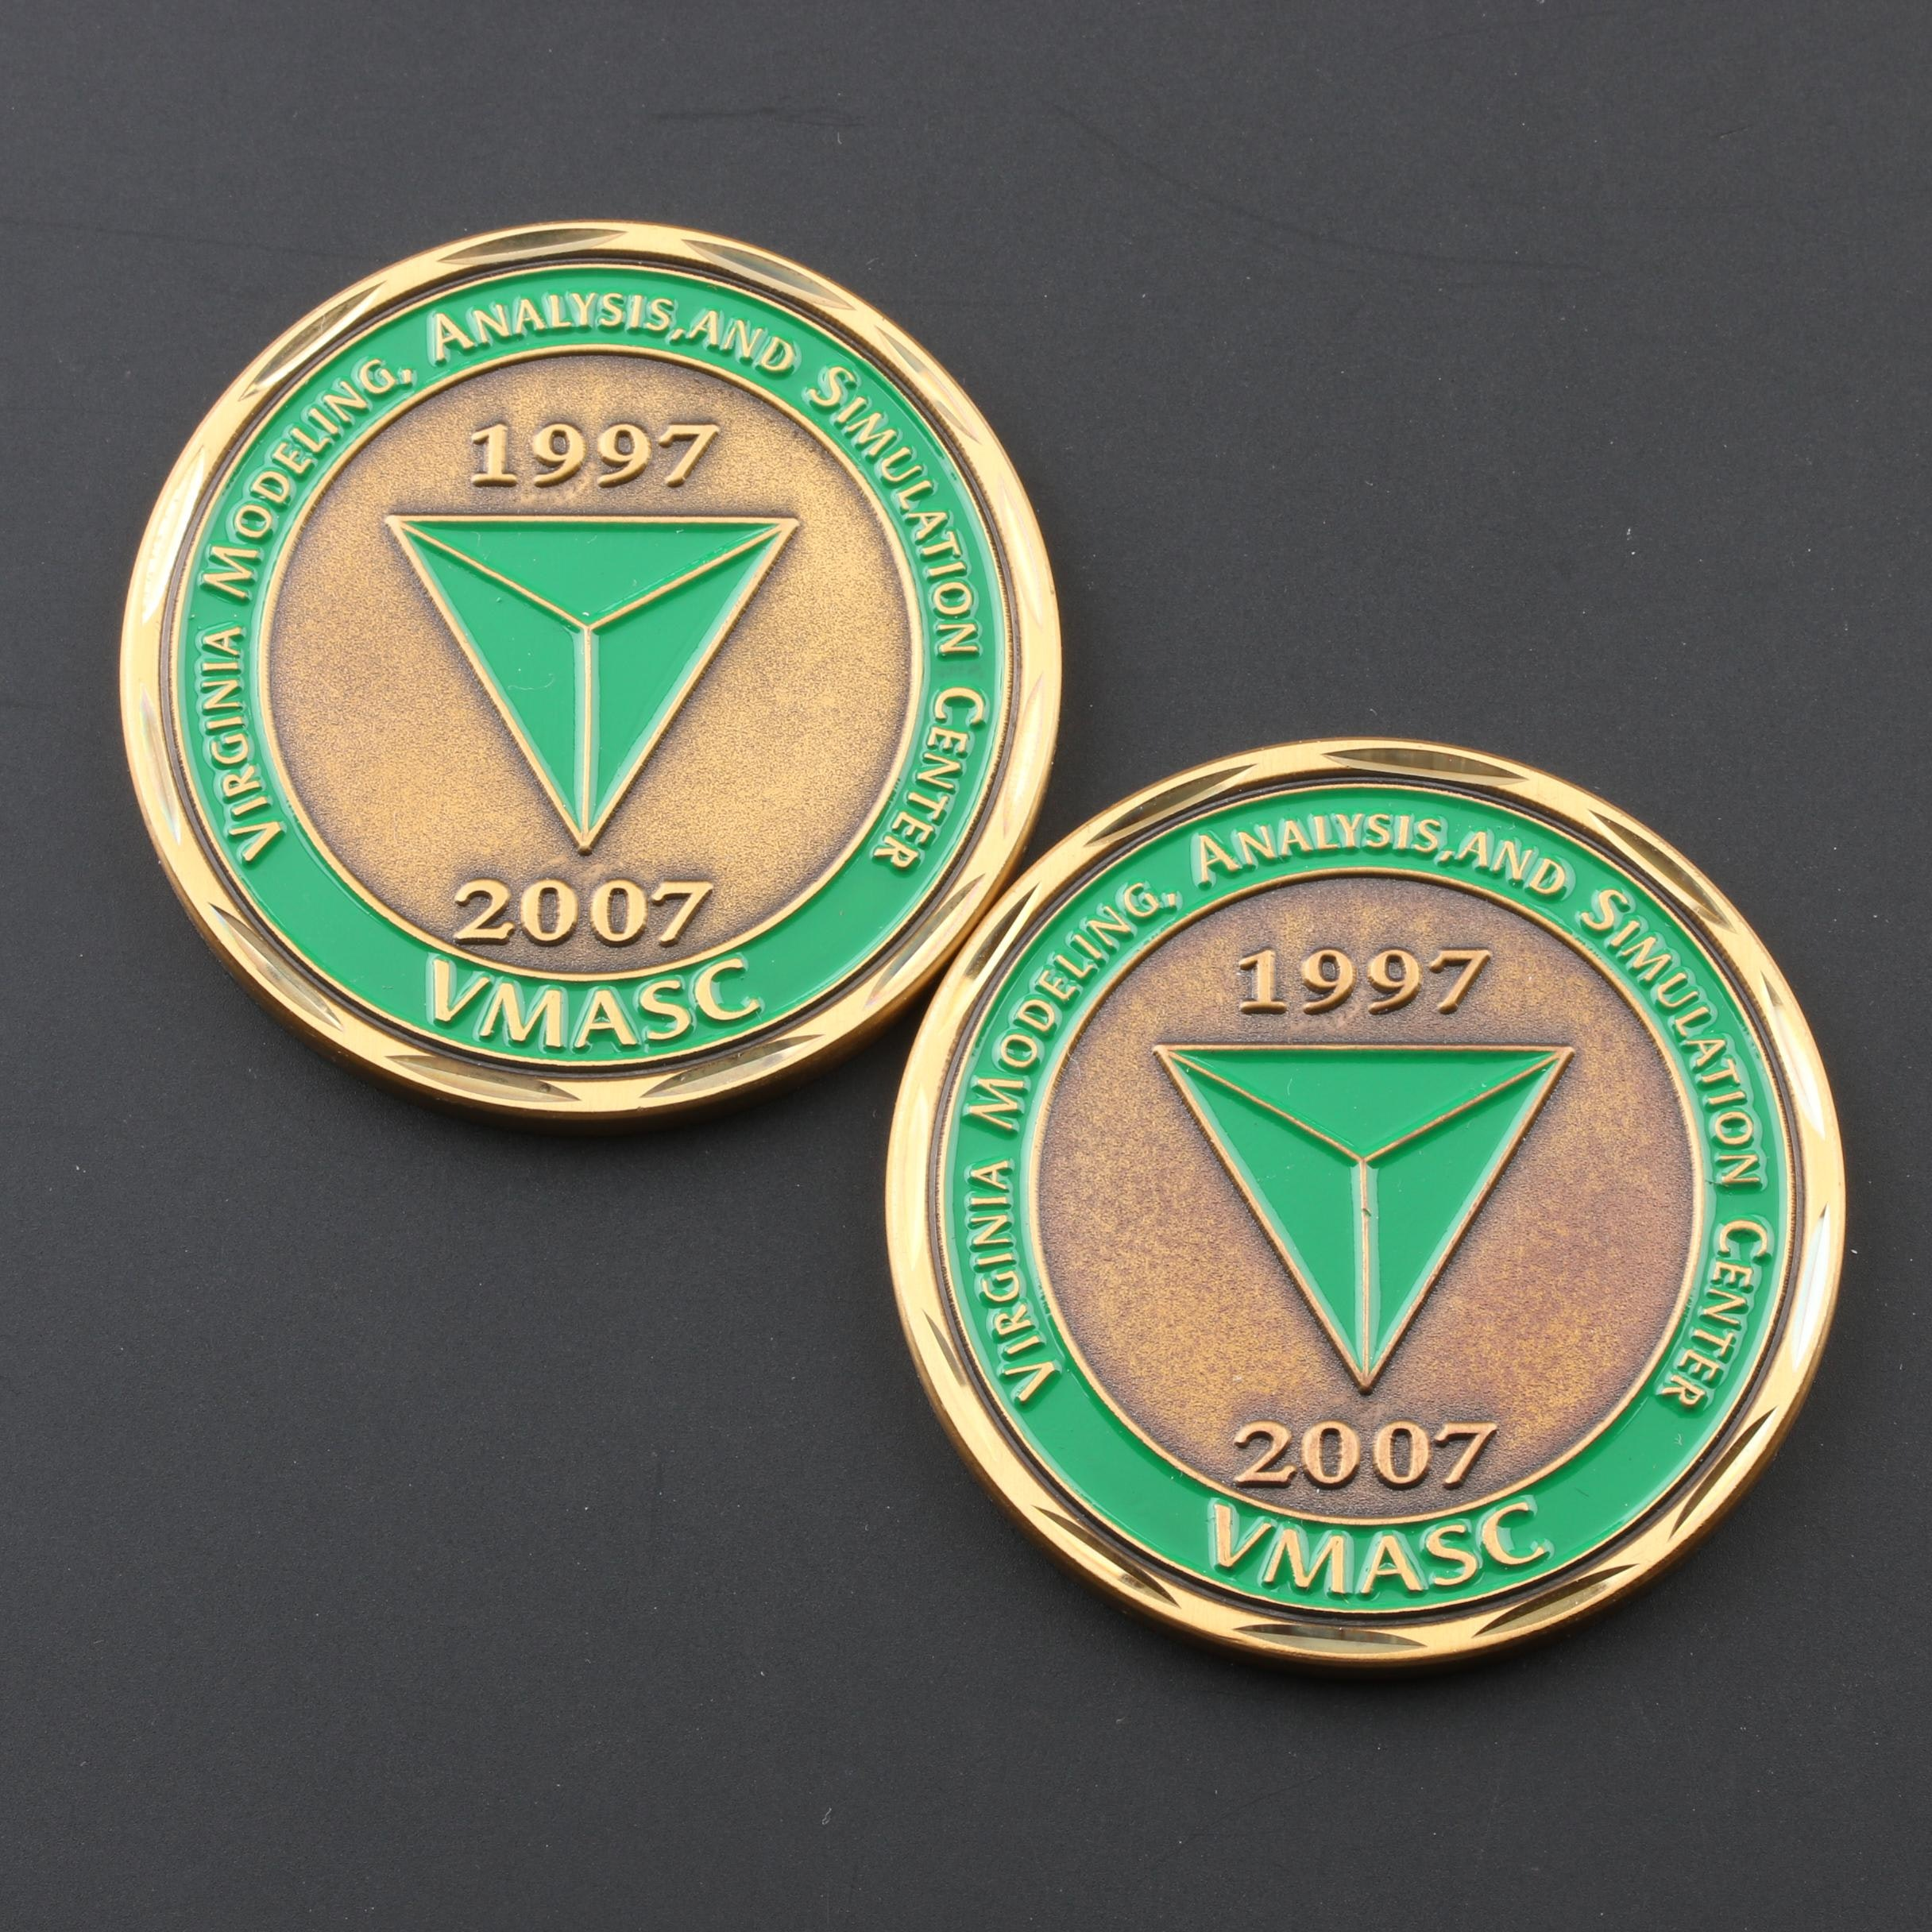 Group of Two VMASC 10 Year Commemorative Brass Medals